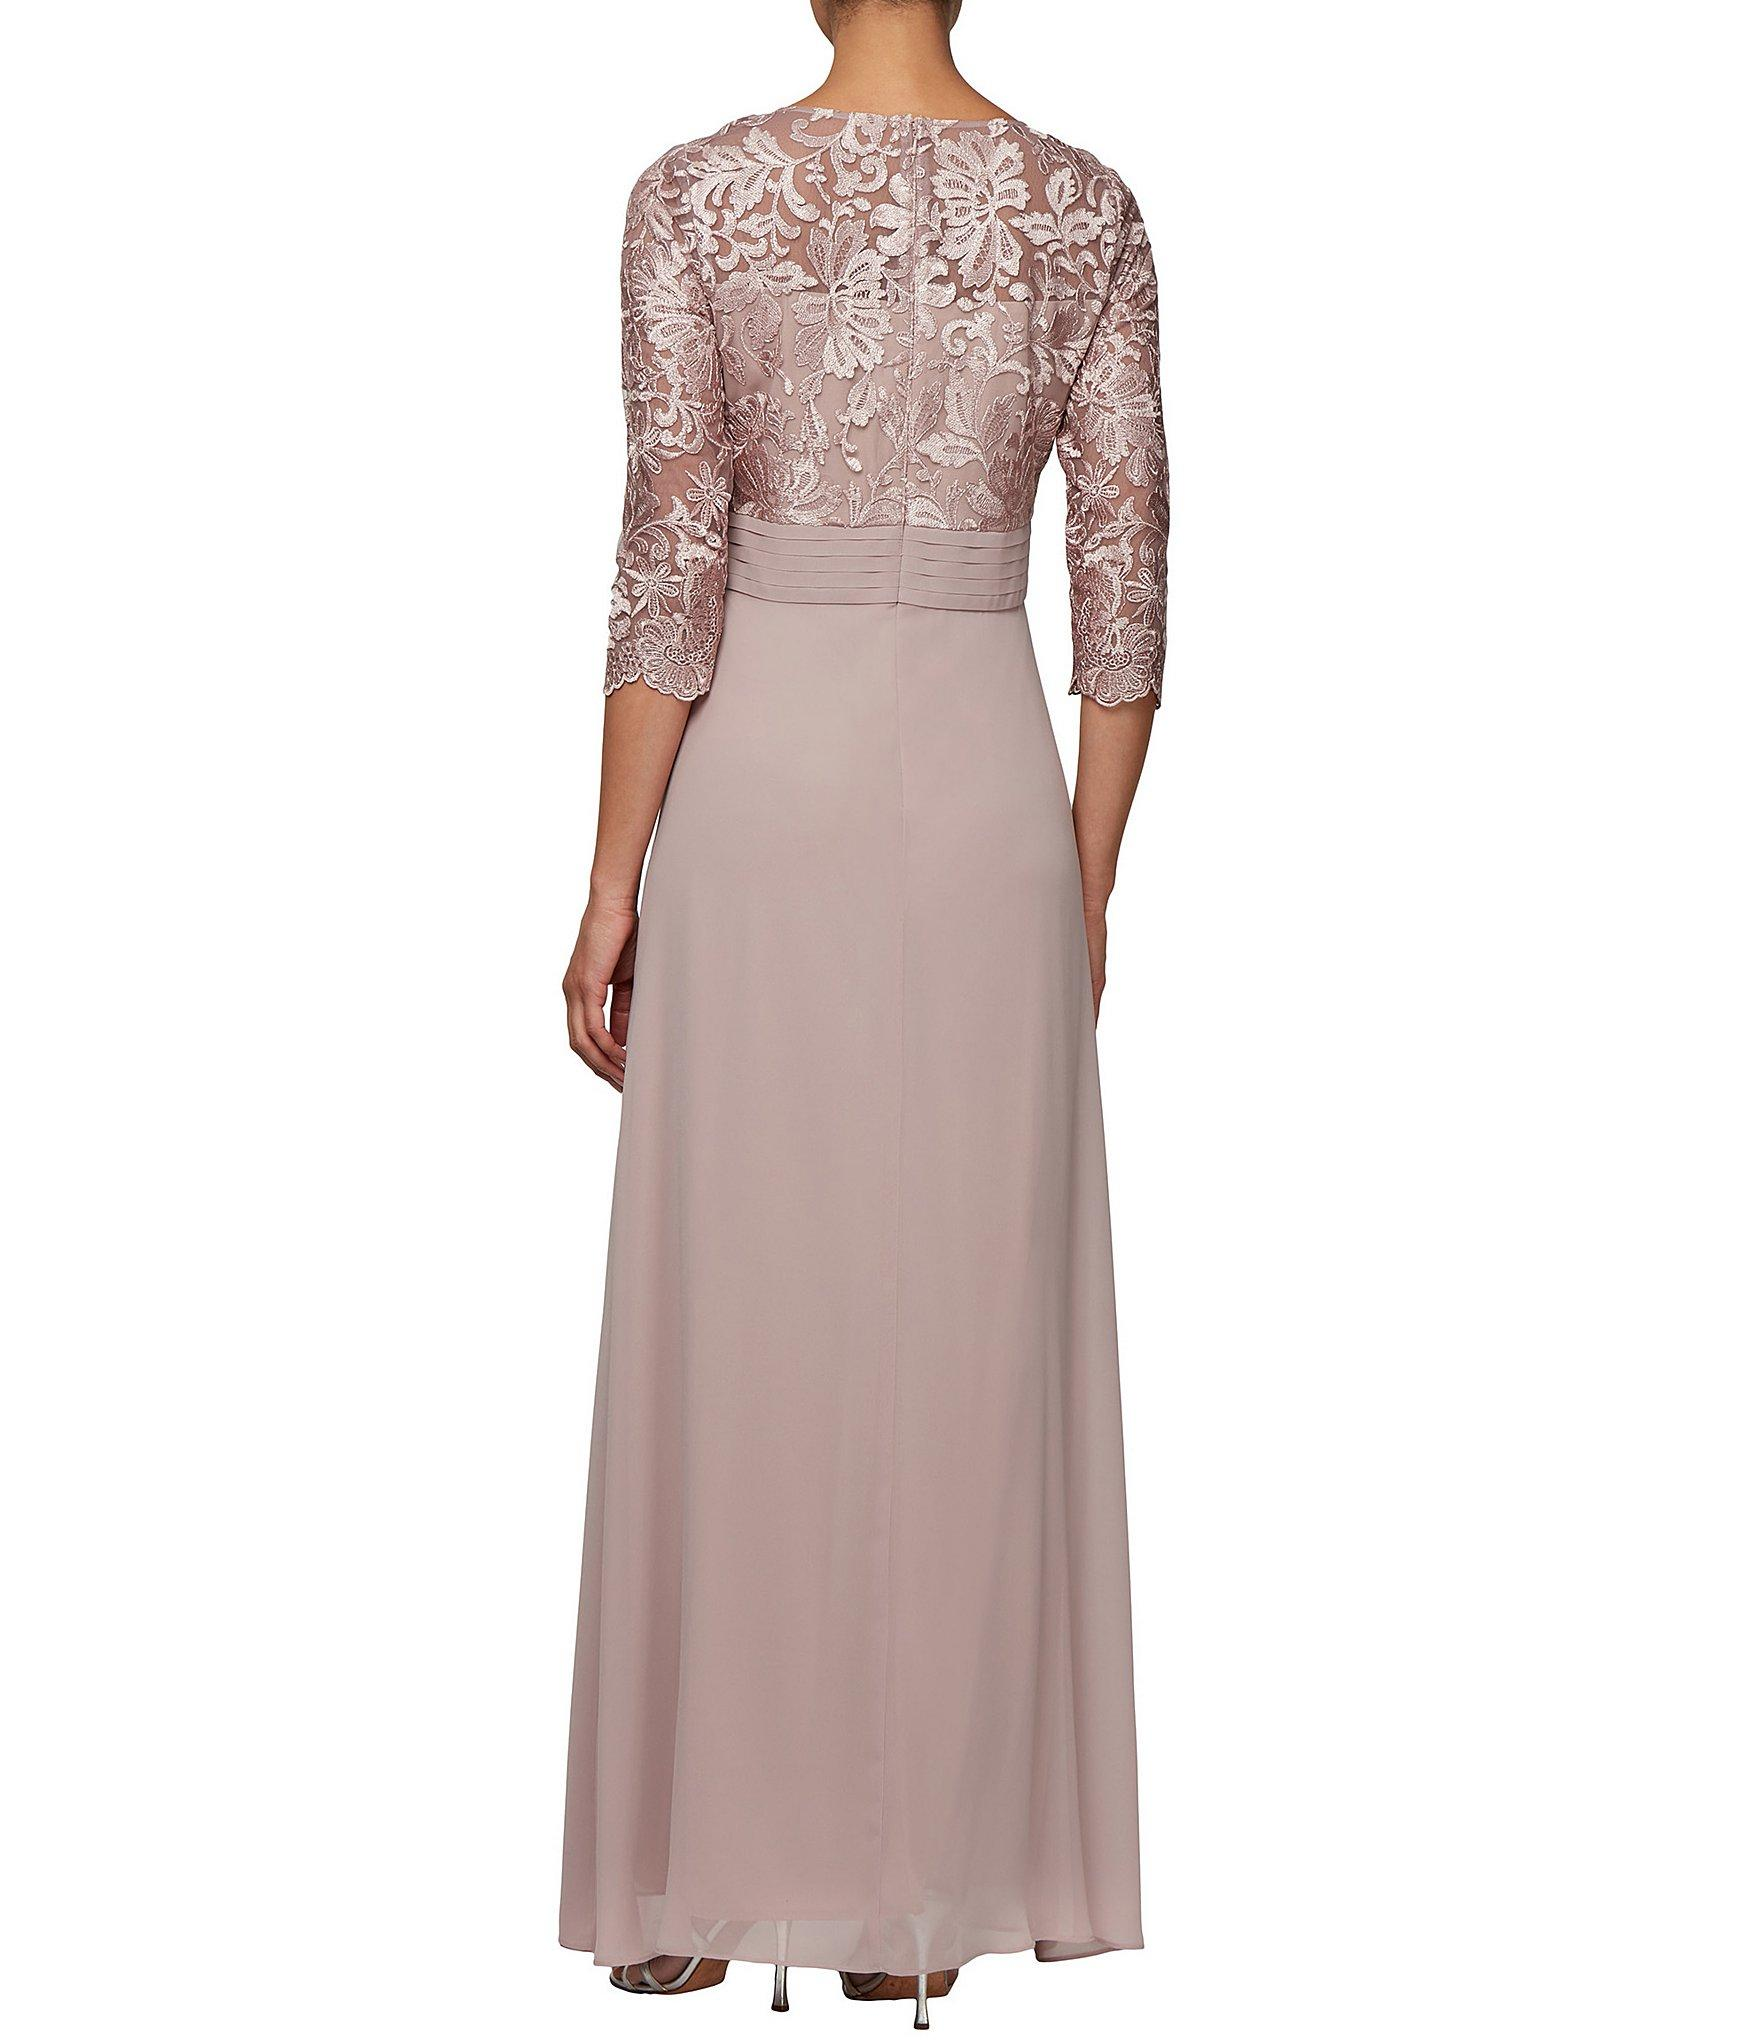 4cfa80be Alex Evenings - Multicolor Embroidered Lace A-line Long Gown - Lyst. View  fullscreen